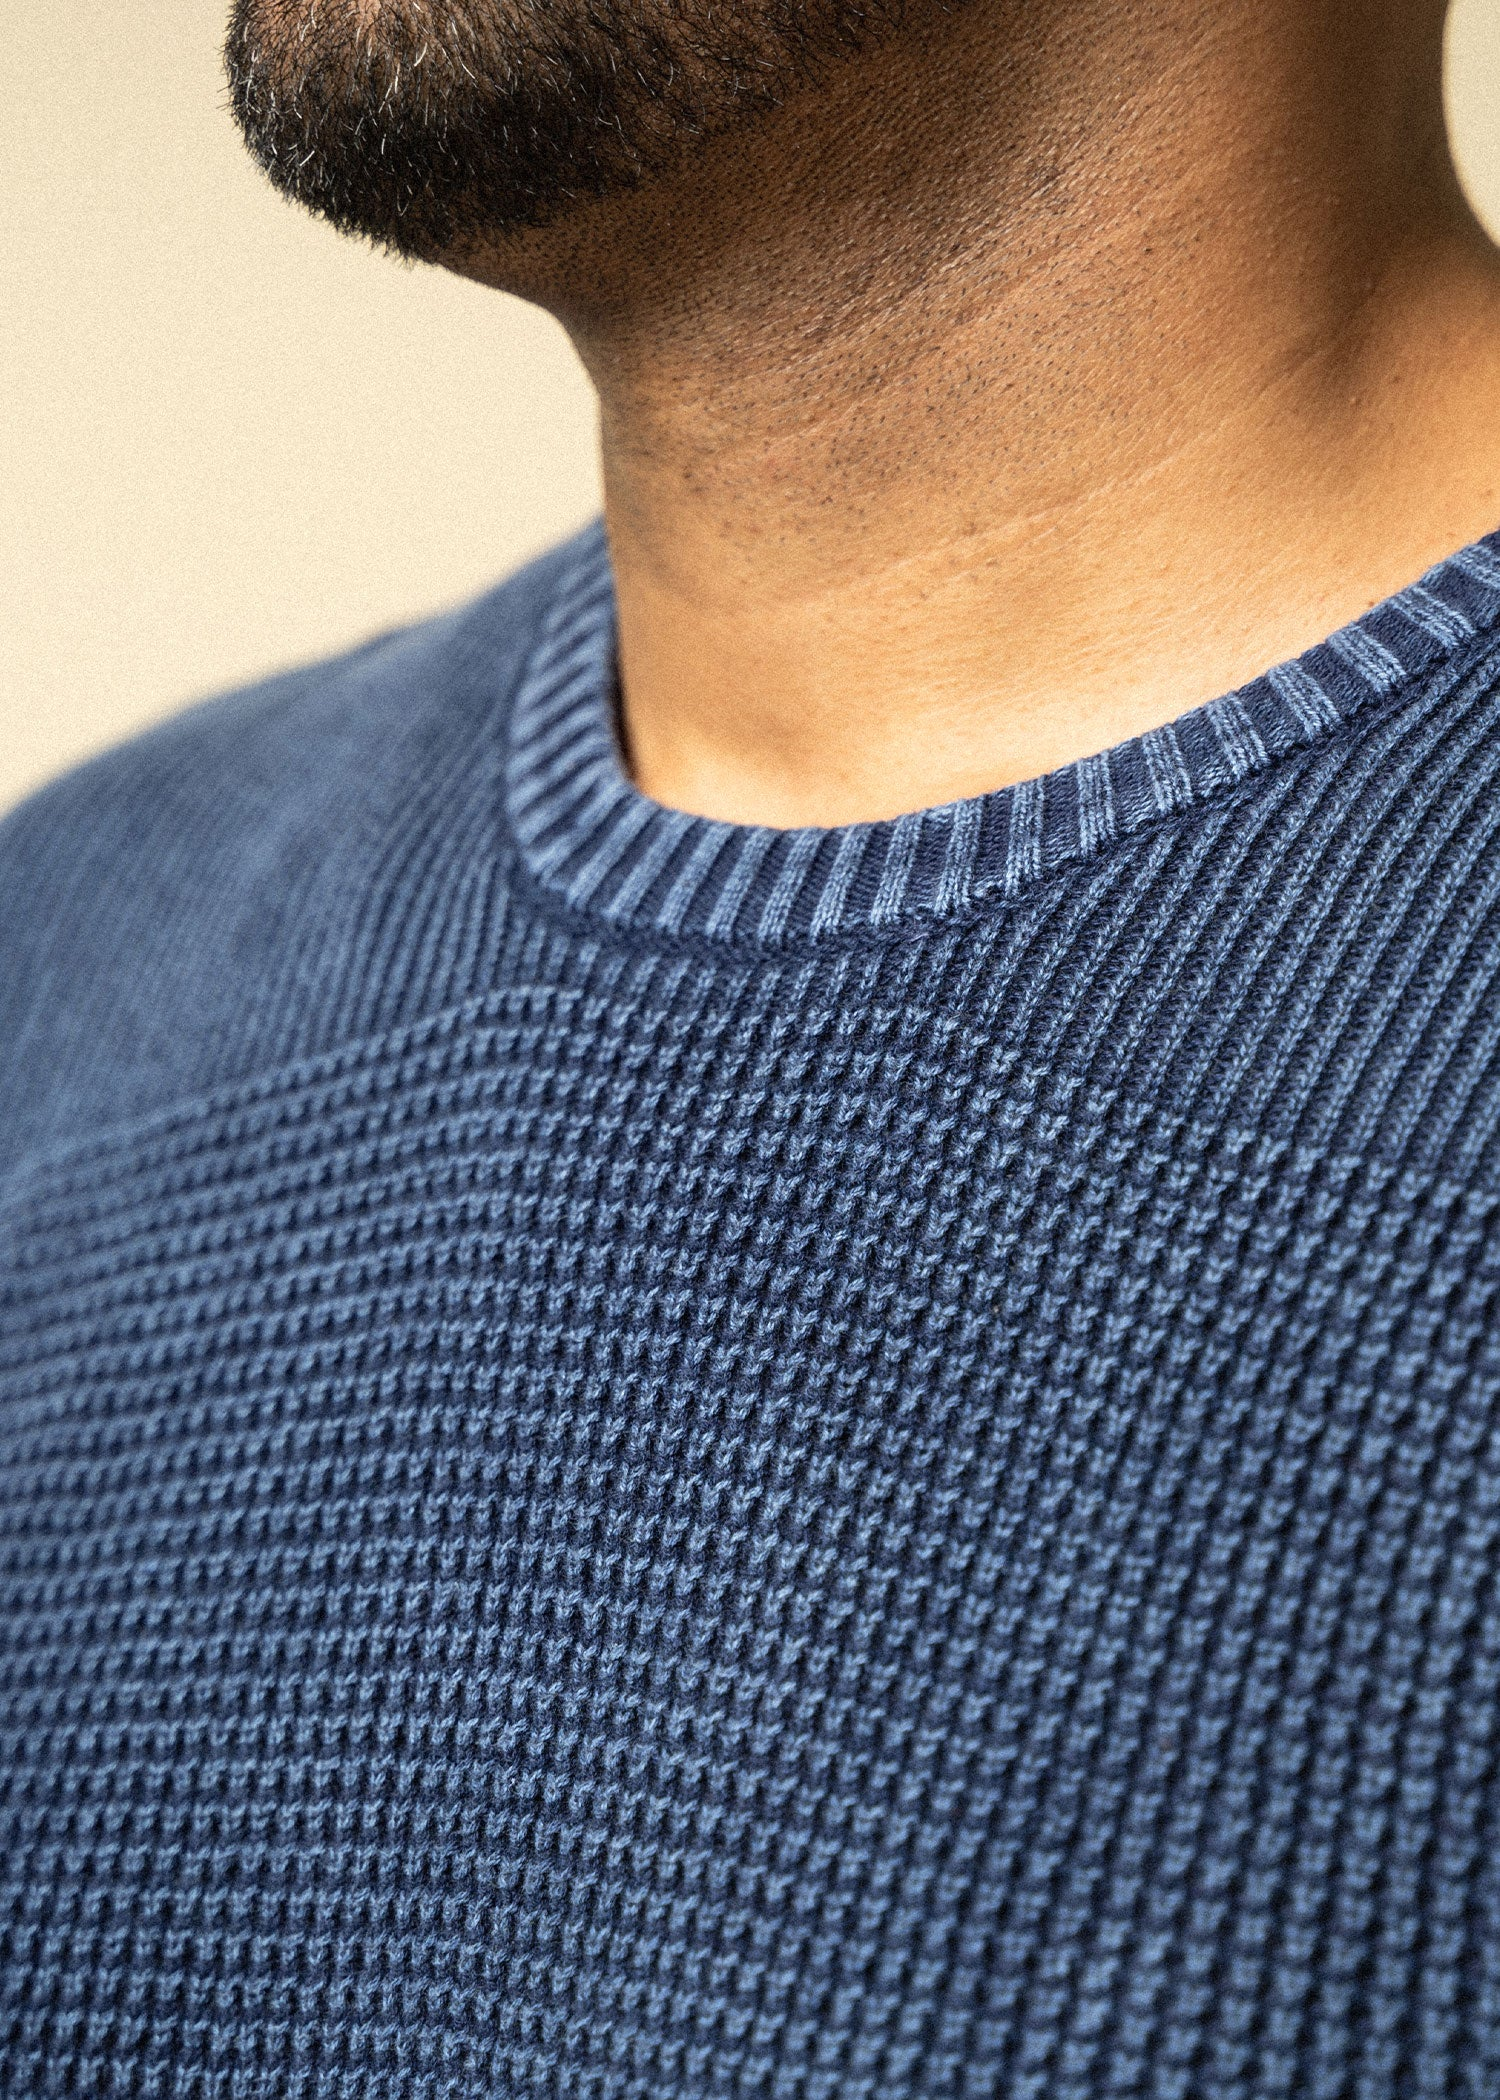 Longjohnandsons-tallmens-acidwashsweater-navy-closeup